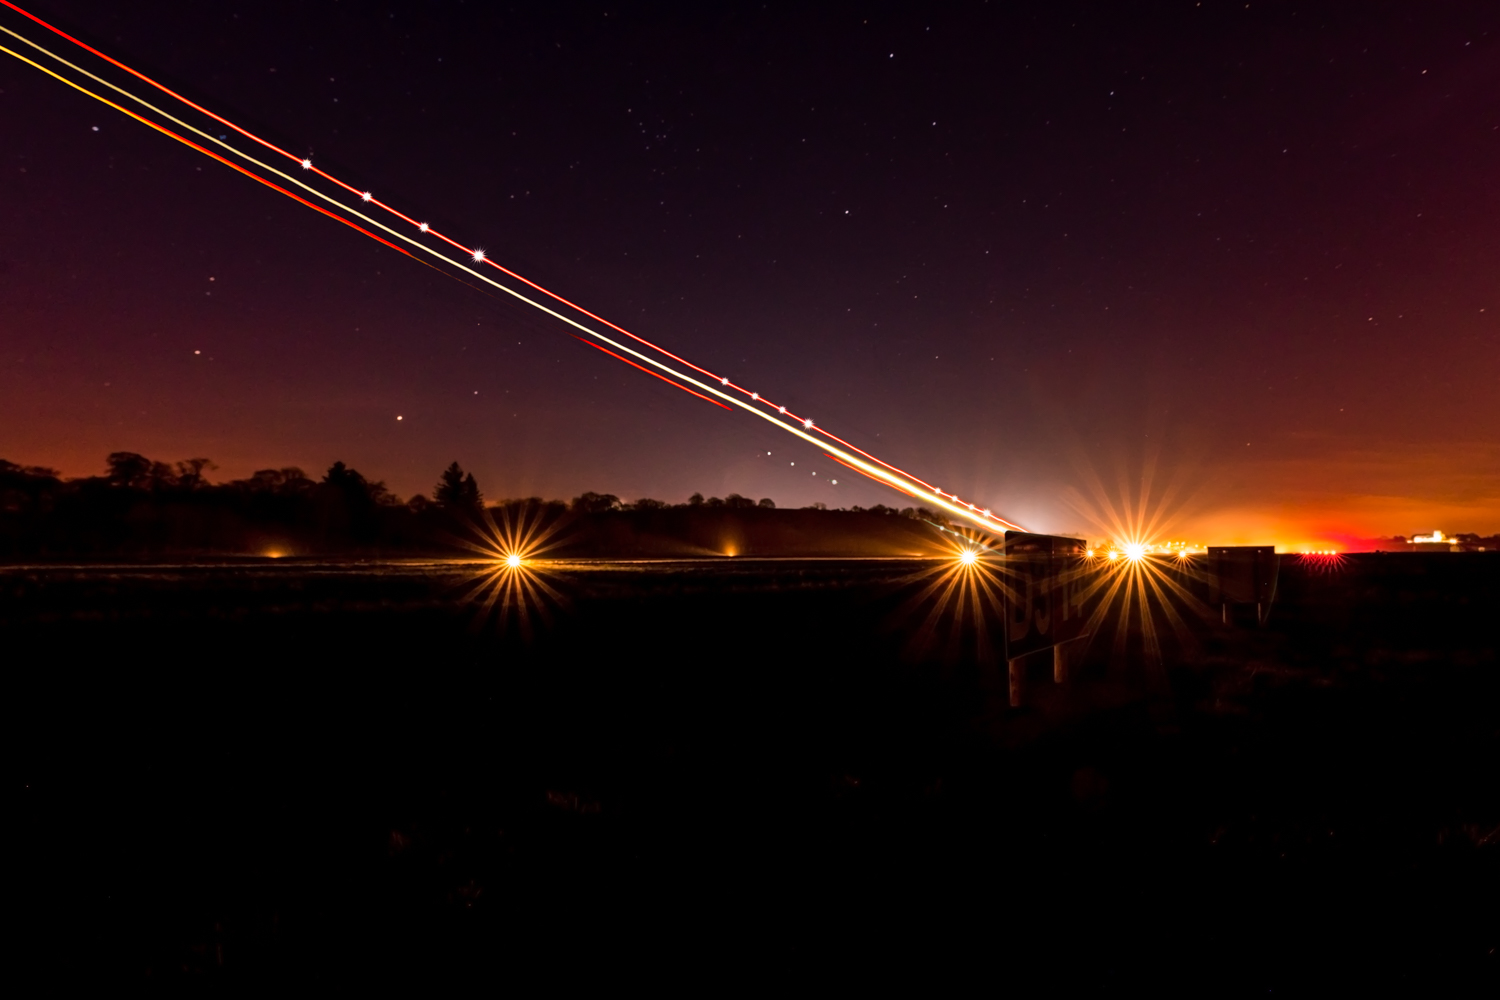 This image was taken of a plane departing Enniskillen/St Angelo Airport into the starry night sky. It was a 30 second exposure at f/9.0 and ISO-800. The lens locked focus almost instantly on the landing light.